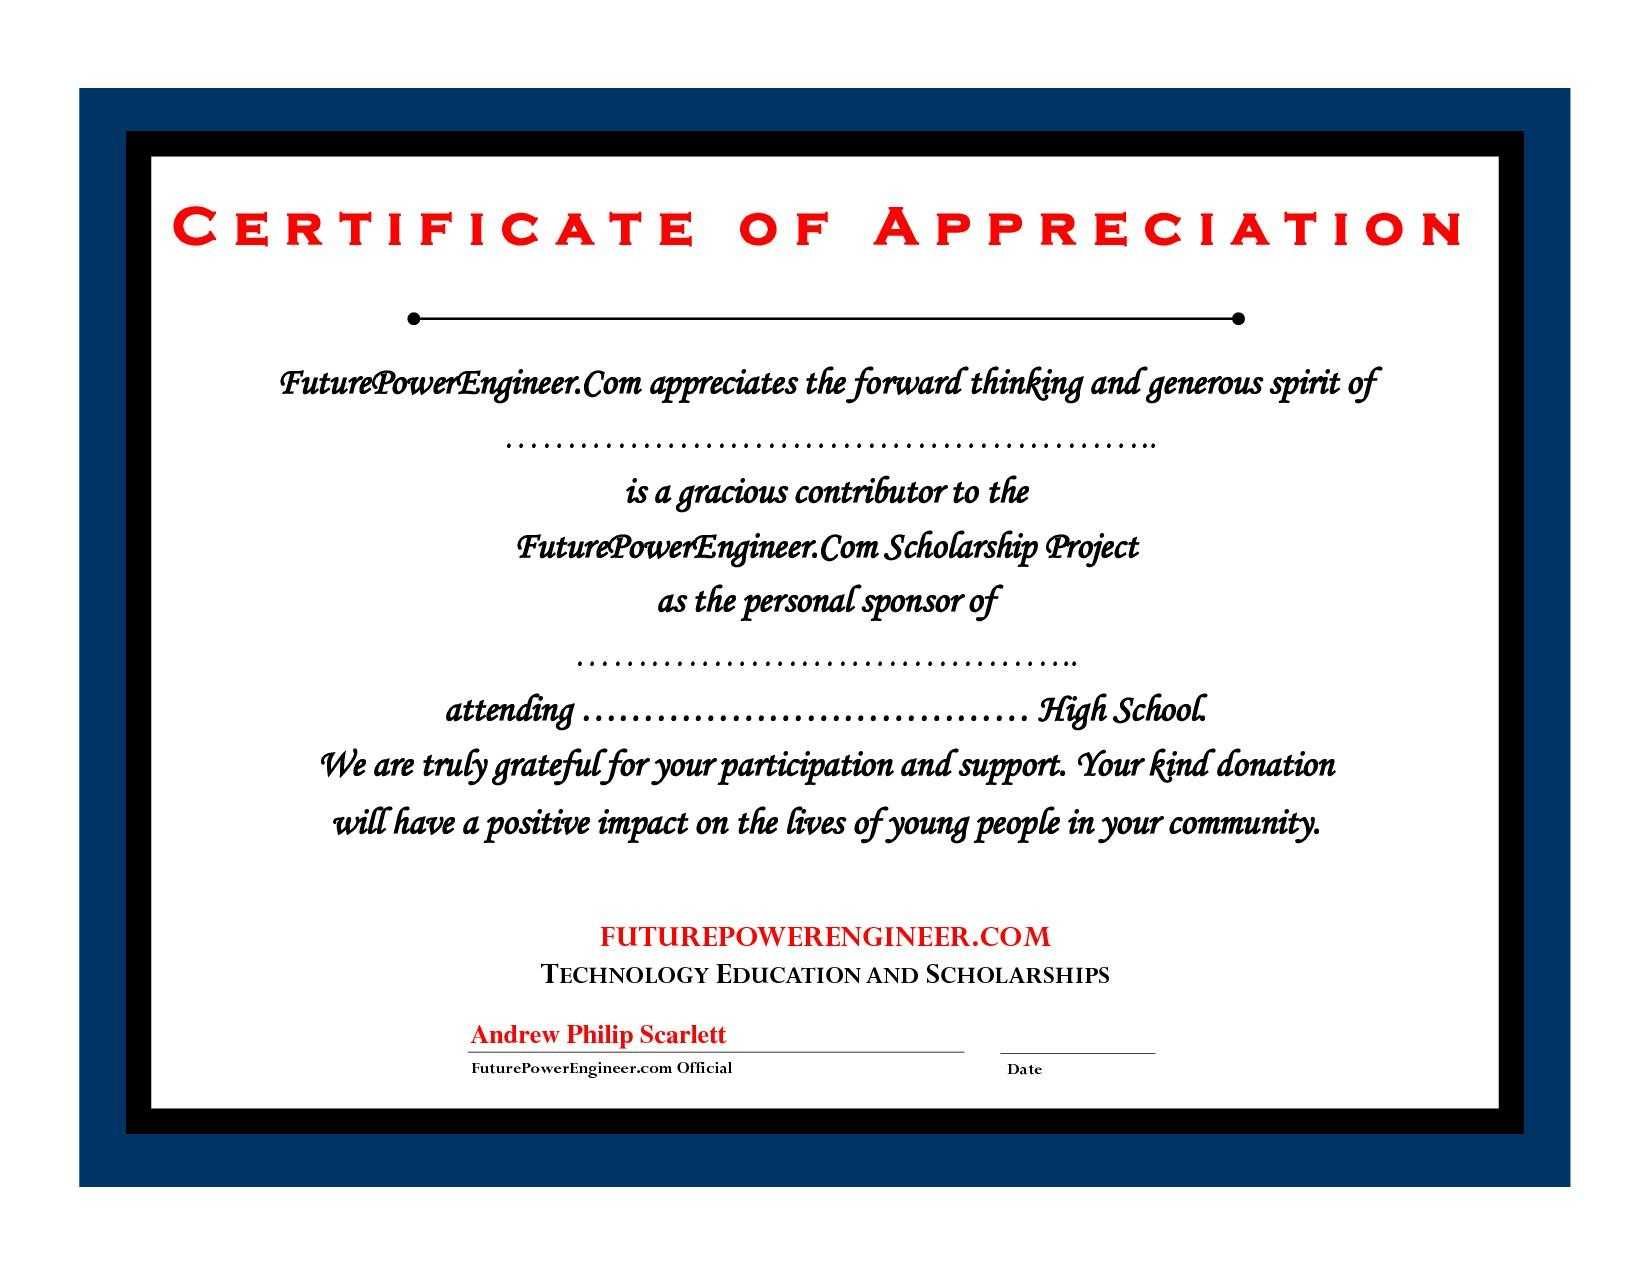 032 Silent Auction Donation Certificate Template Excellent regarding Donation Certificate Template